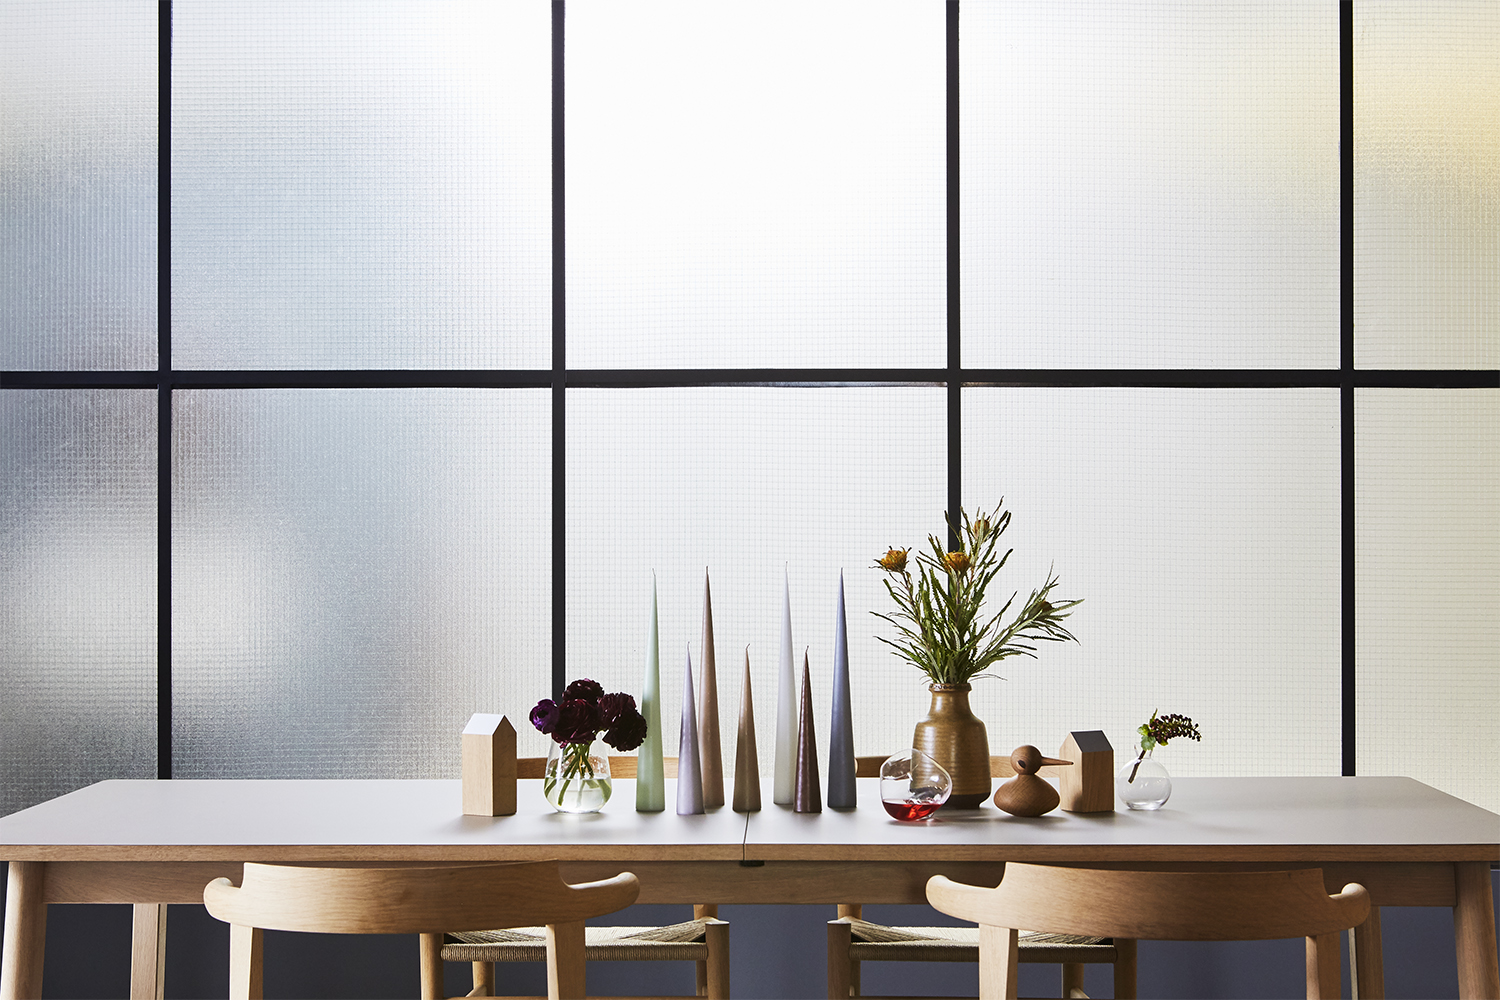 The Apartment showcases Anton's inspiring design collection of new and old pieces.